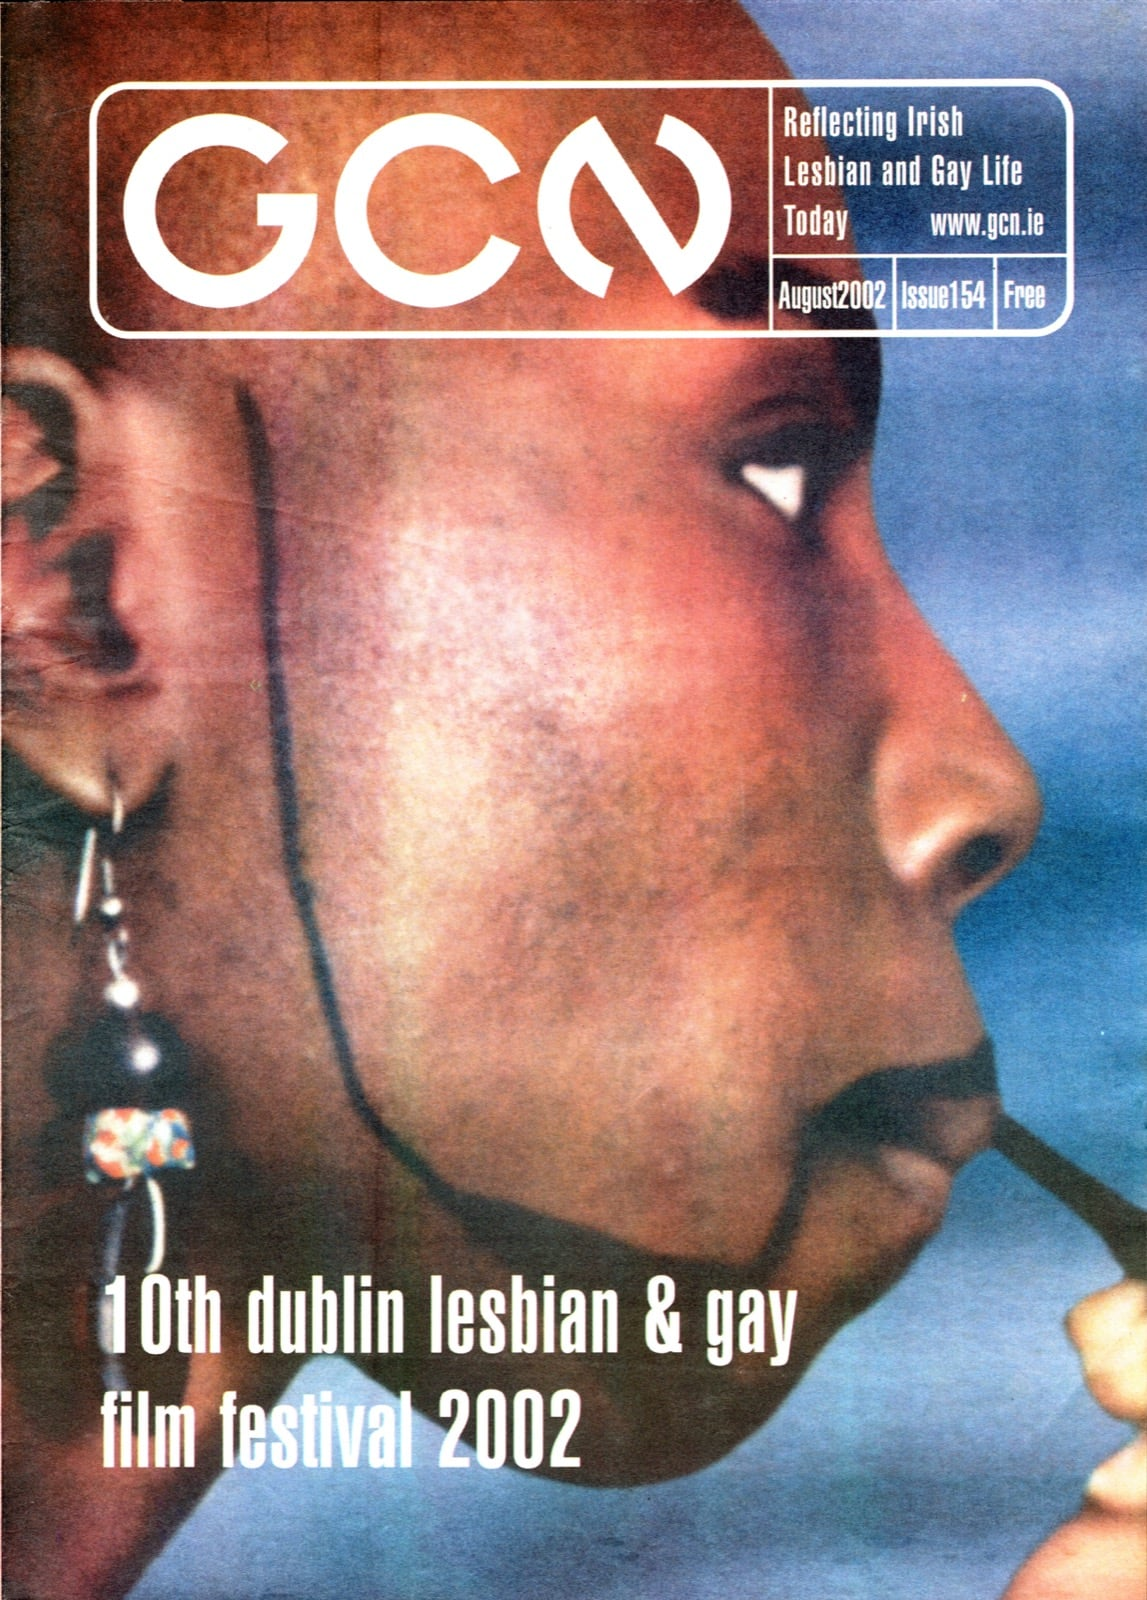 Some of GCN's covers from 1999 with a black woman on the cover in profile view.